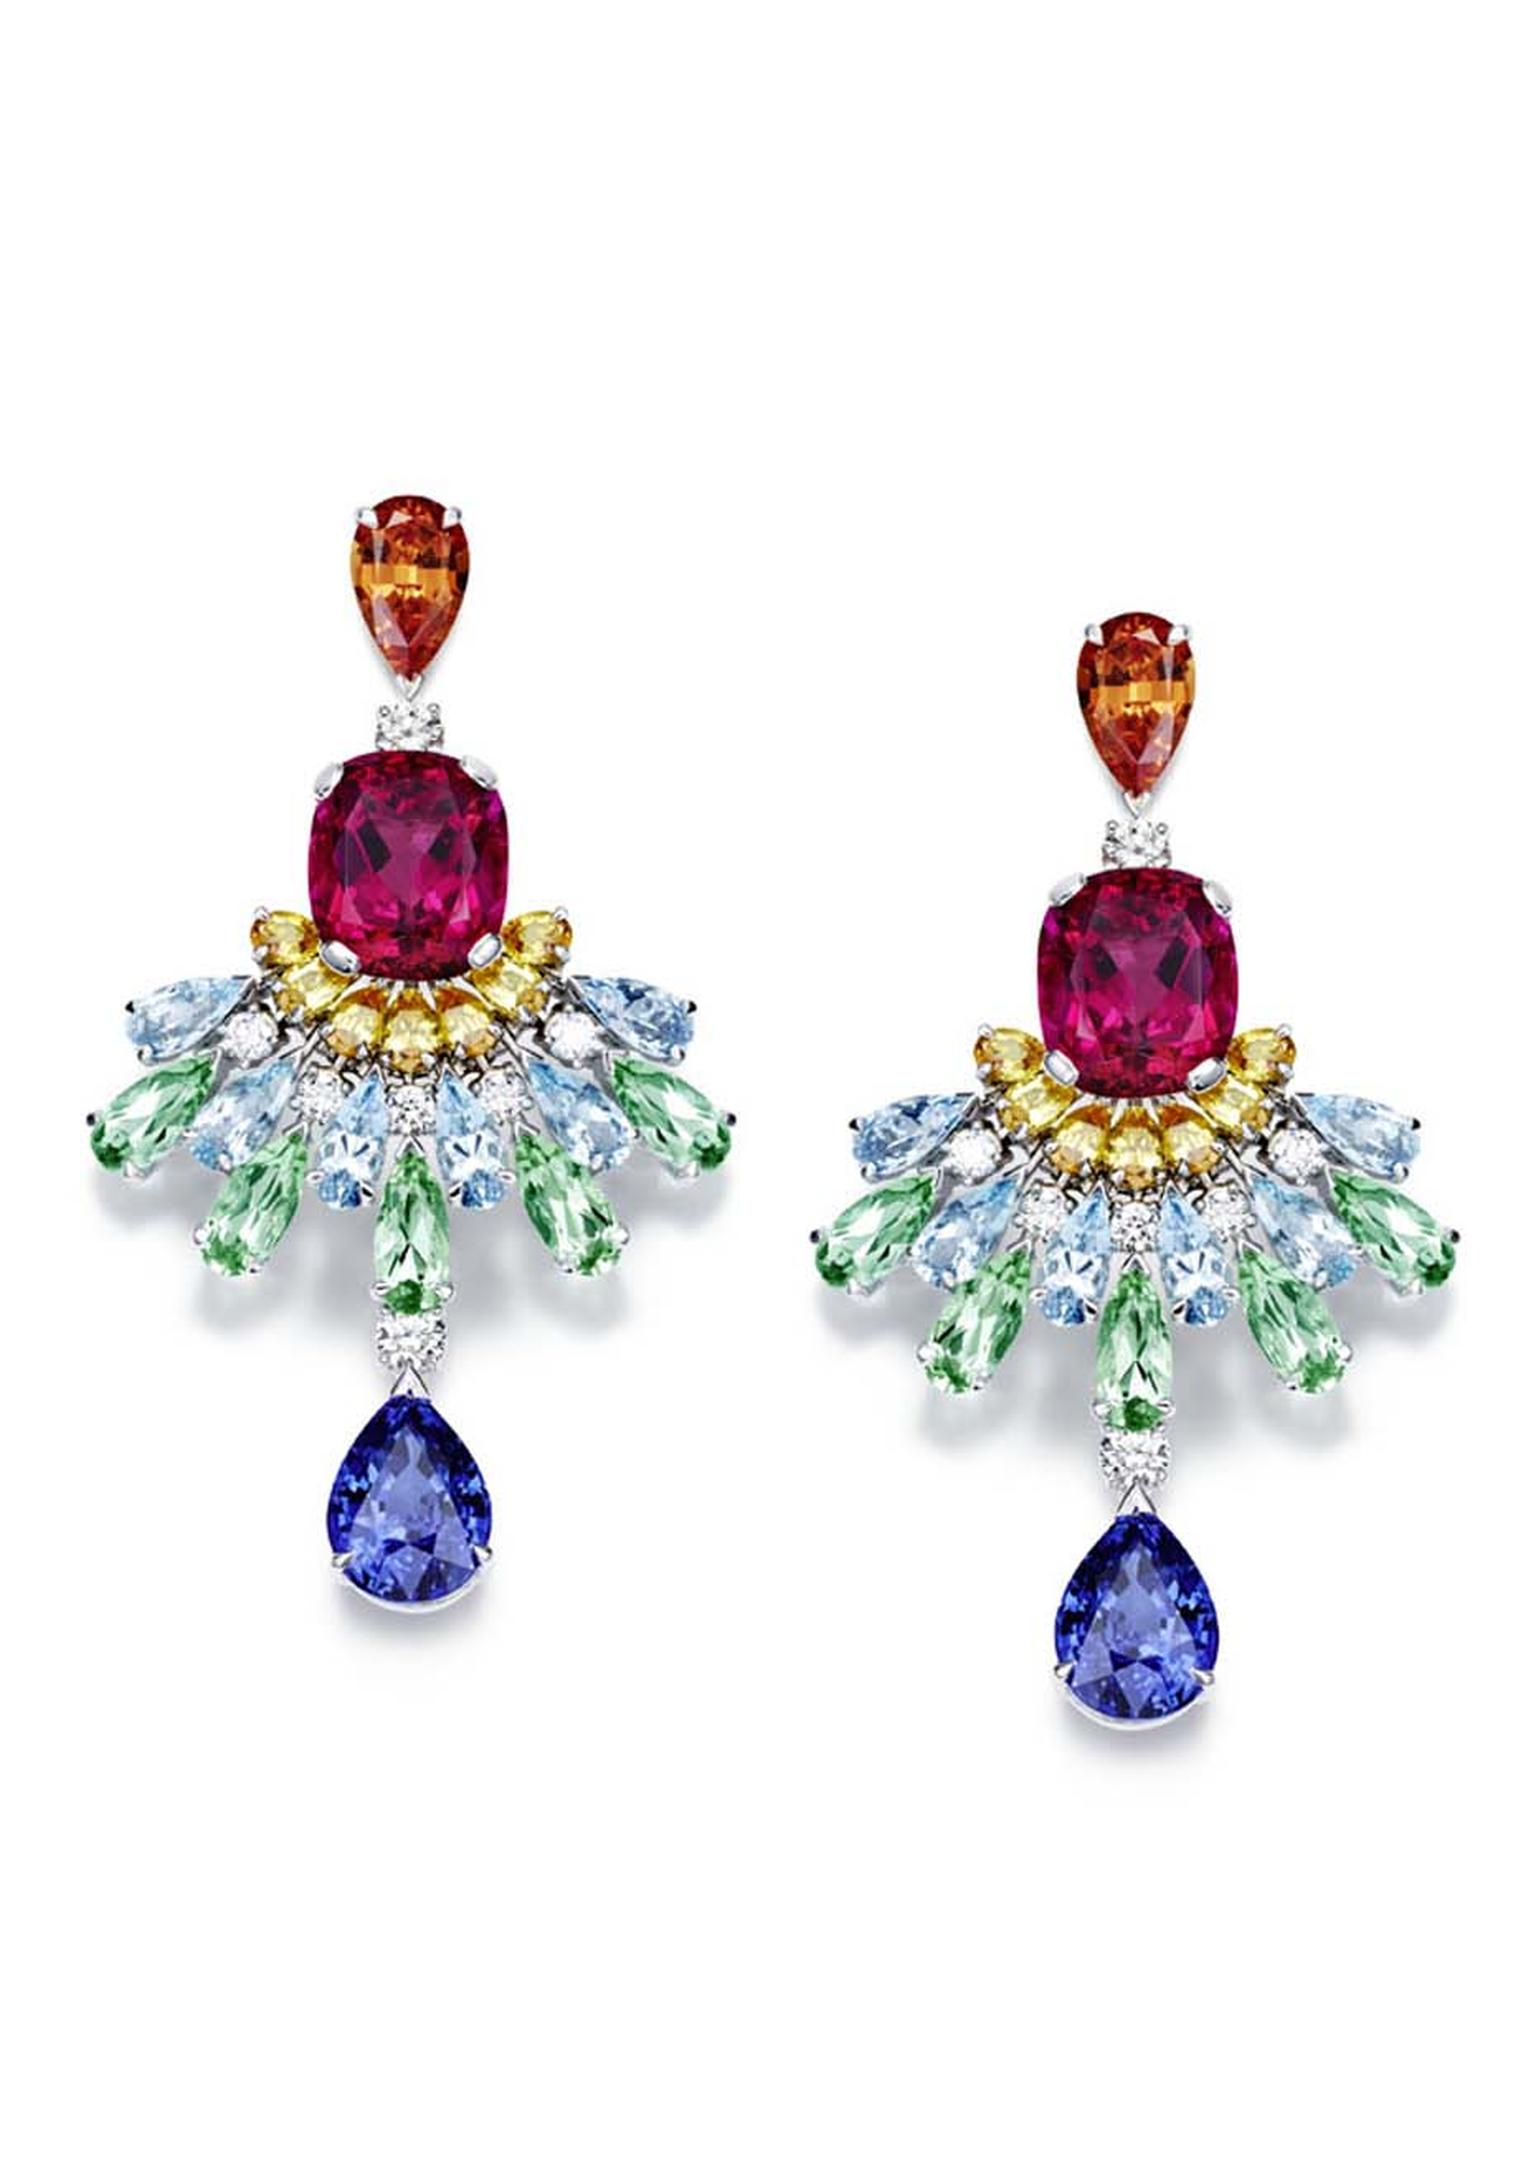 Piaget's Rose Passion earrings are set with a variety of colourful gemstones, including rubellites, topaz and aquamarines